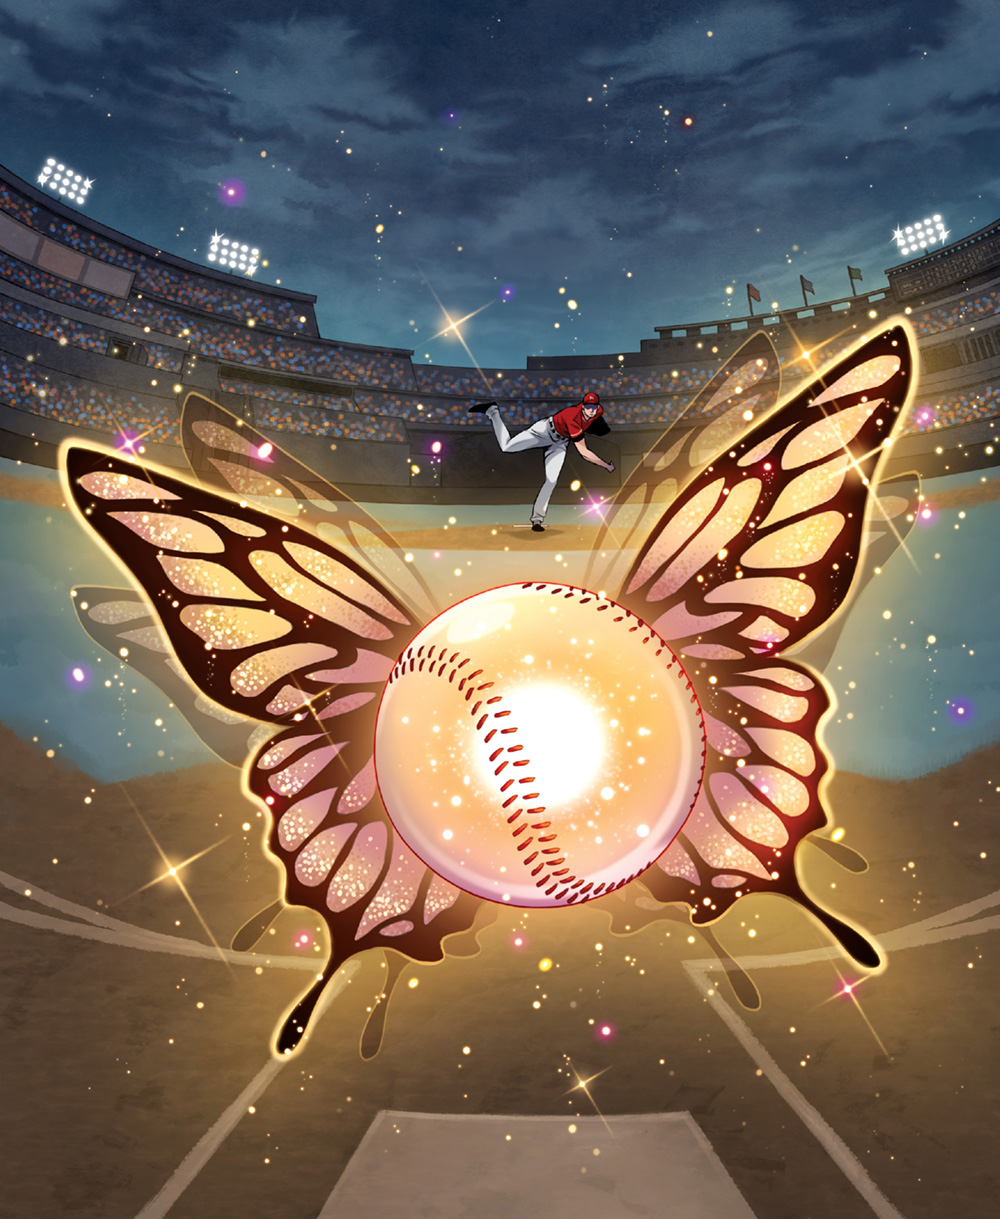 illustration of a baseball with butterfly wings